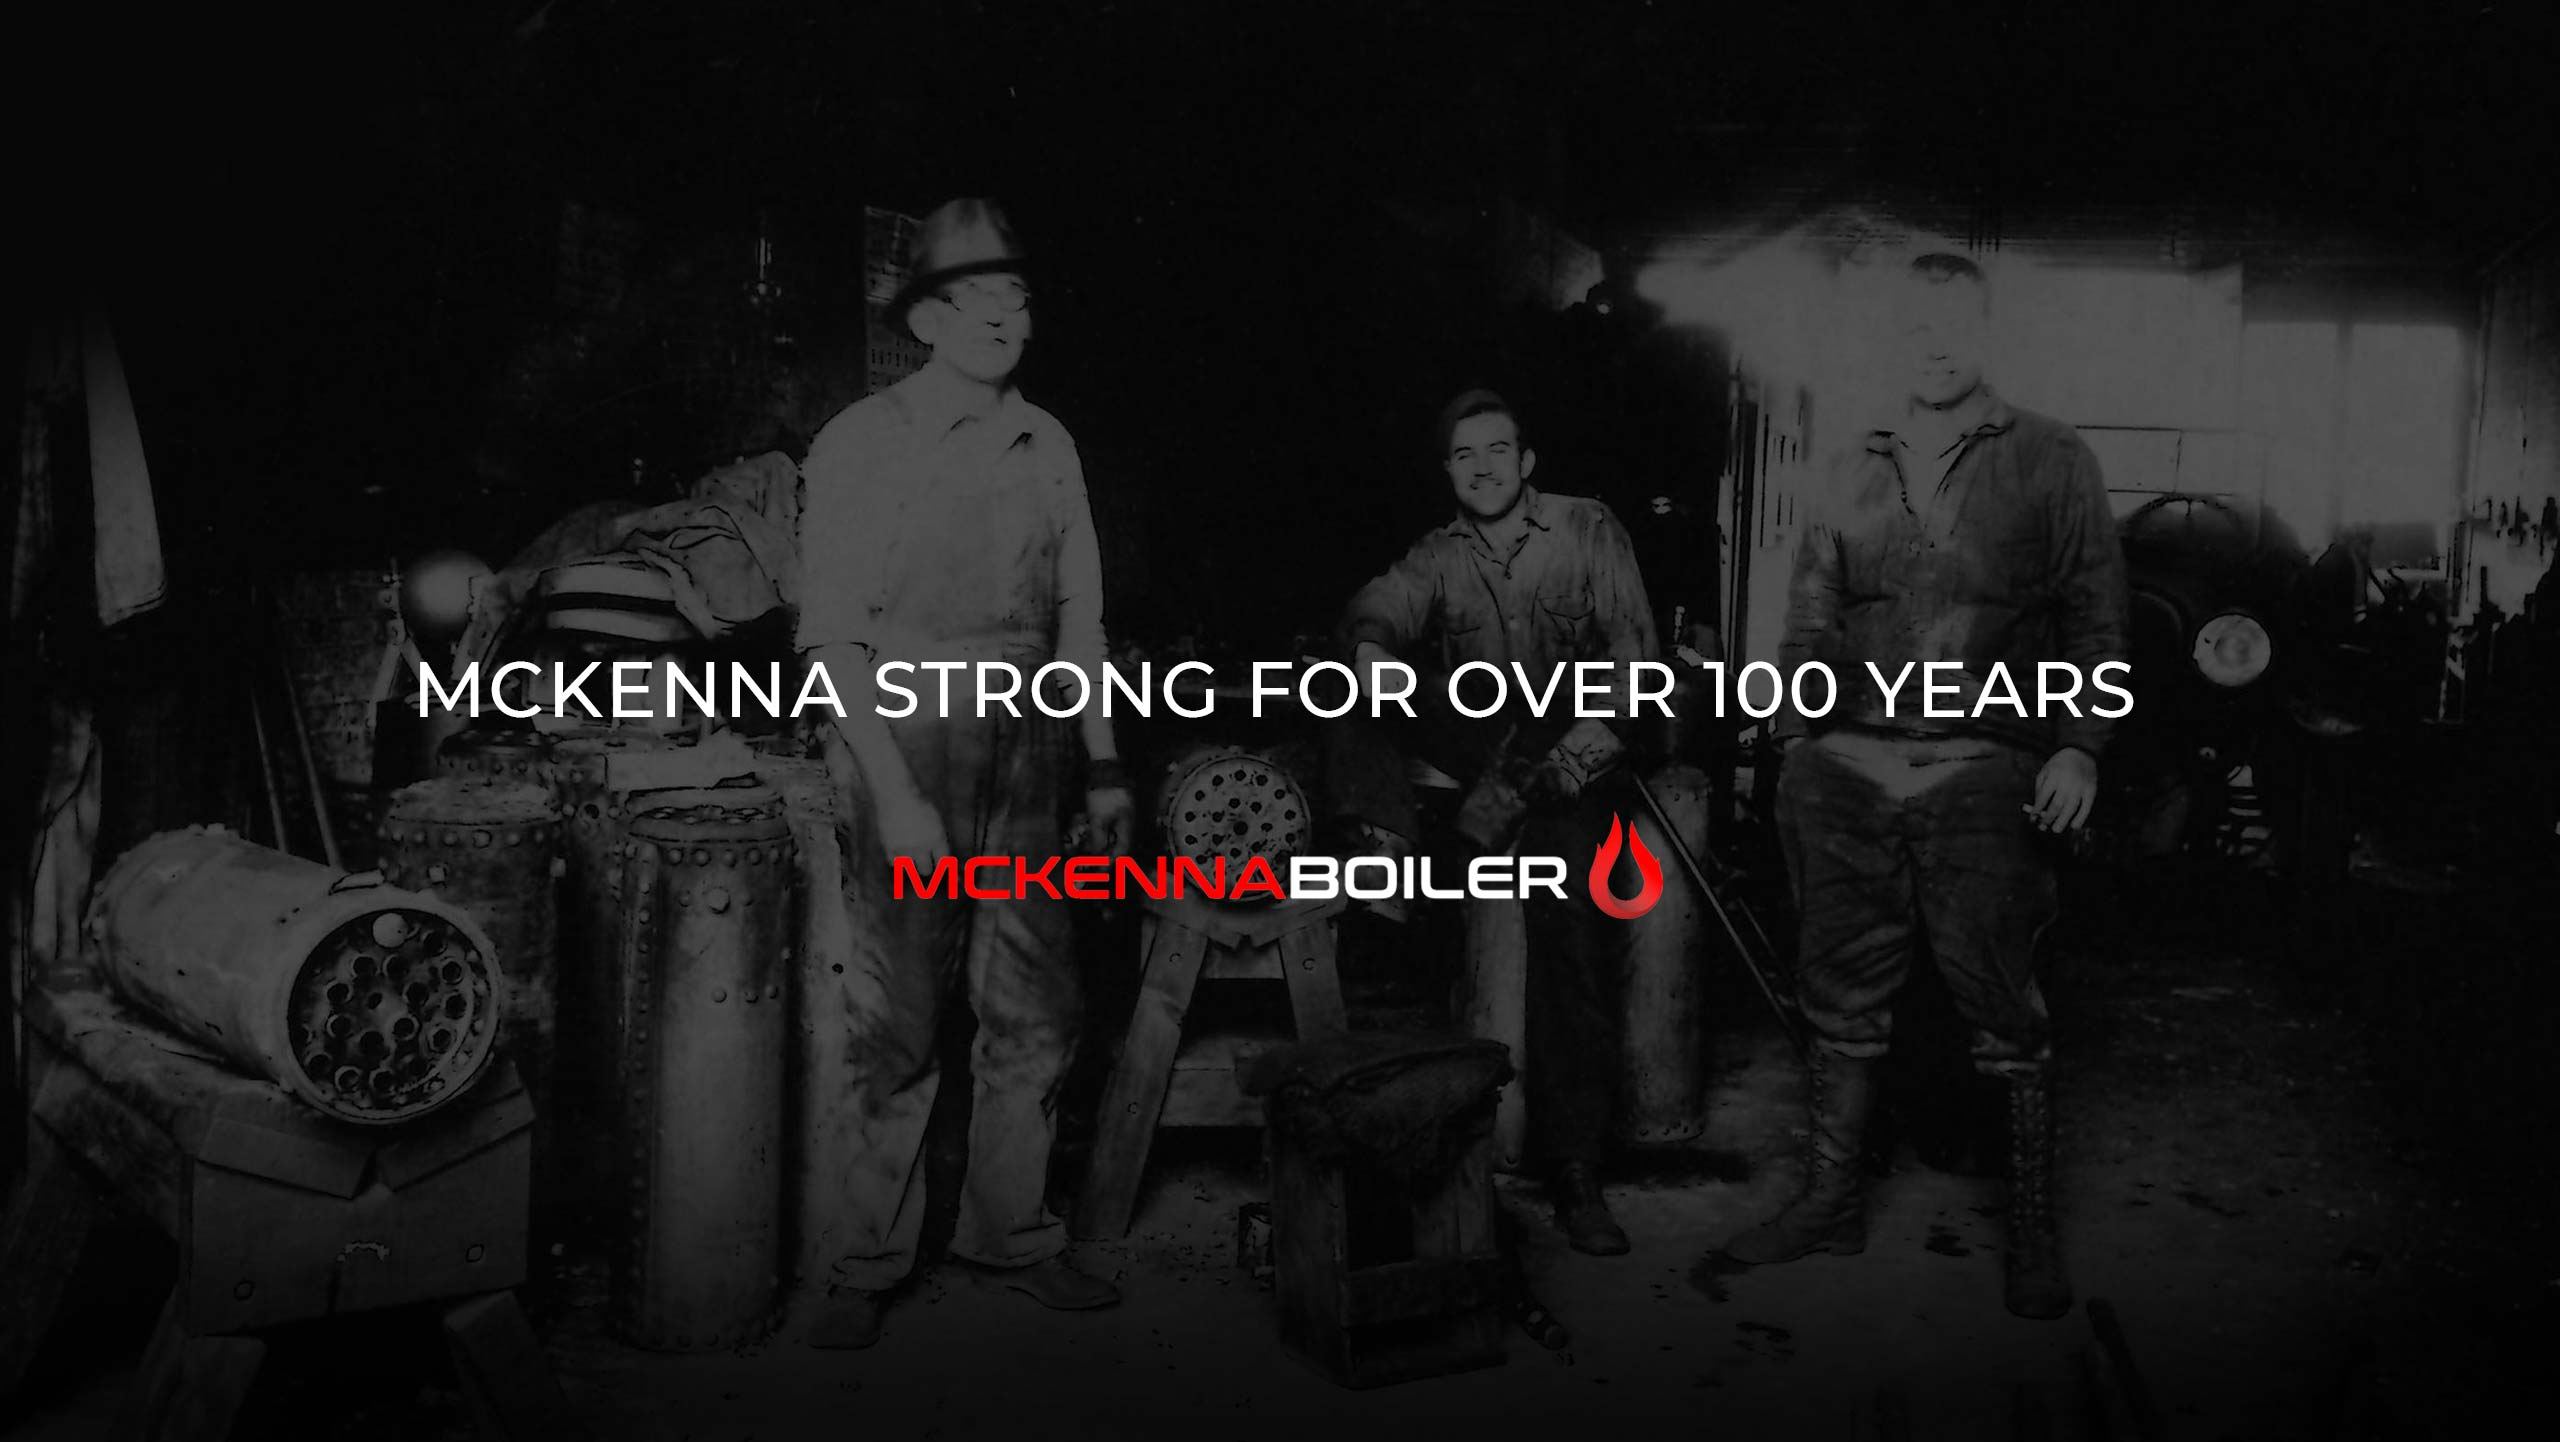 McKenna Strong for over 100 Years